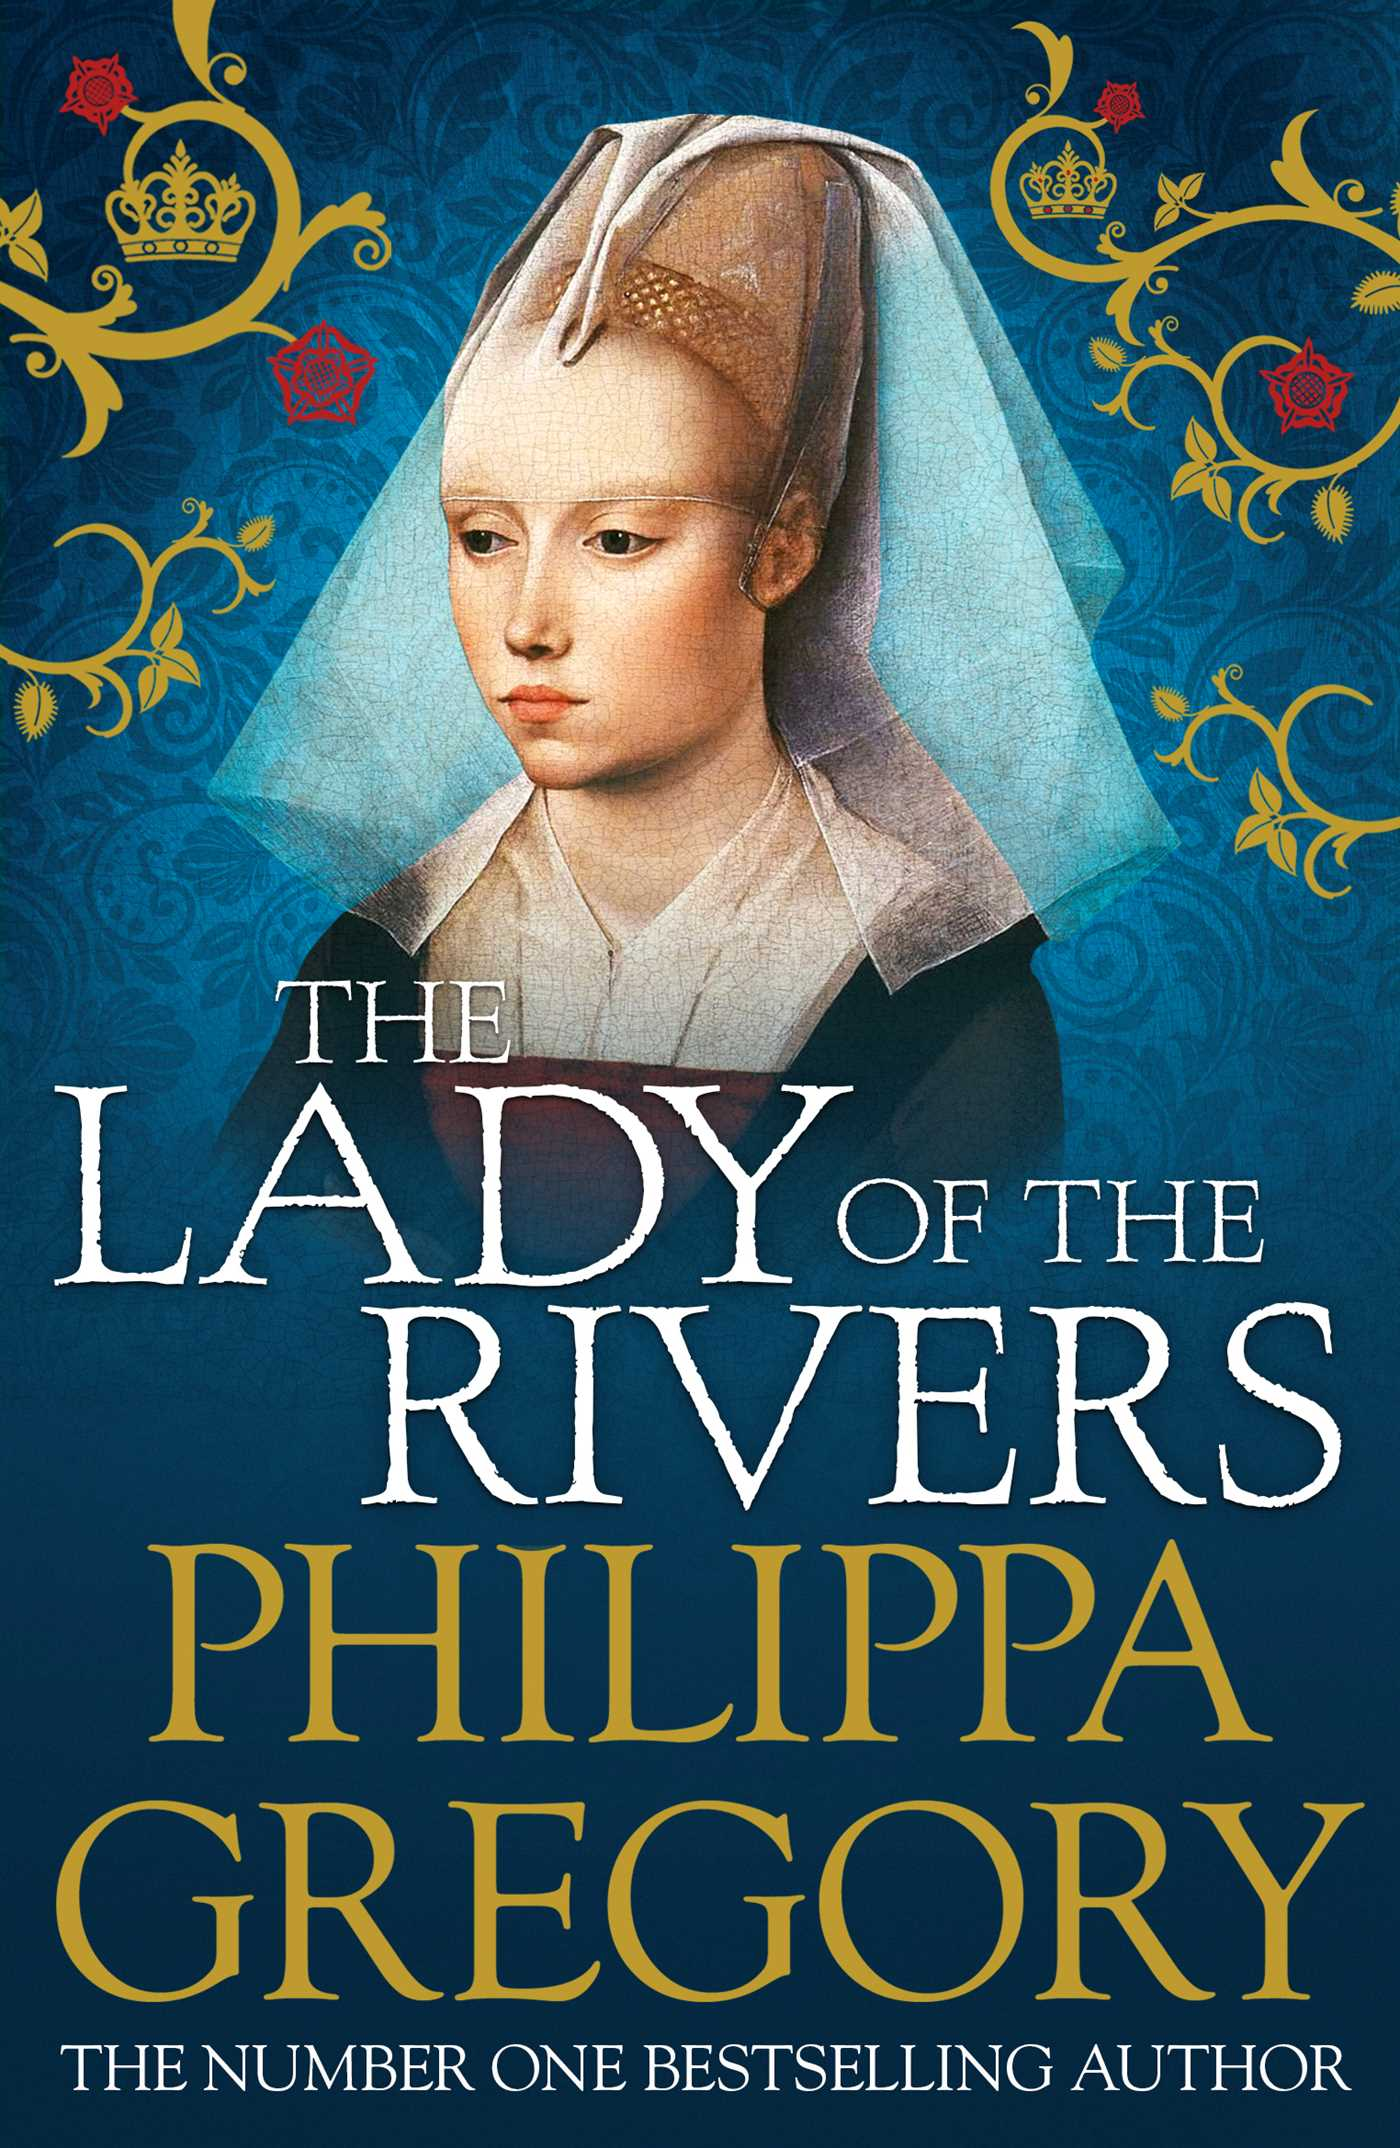 The lady of the rivers 9781847394668 hr